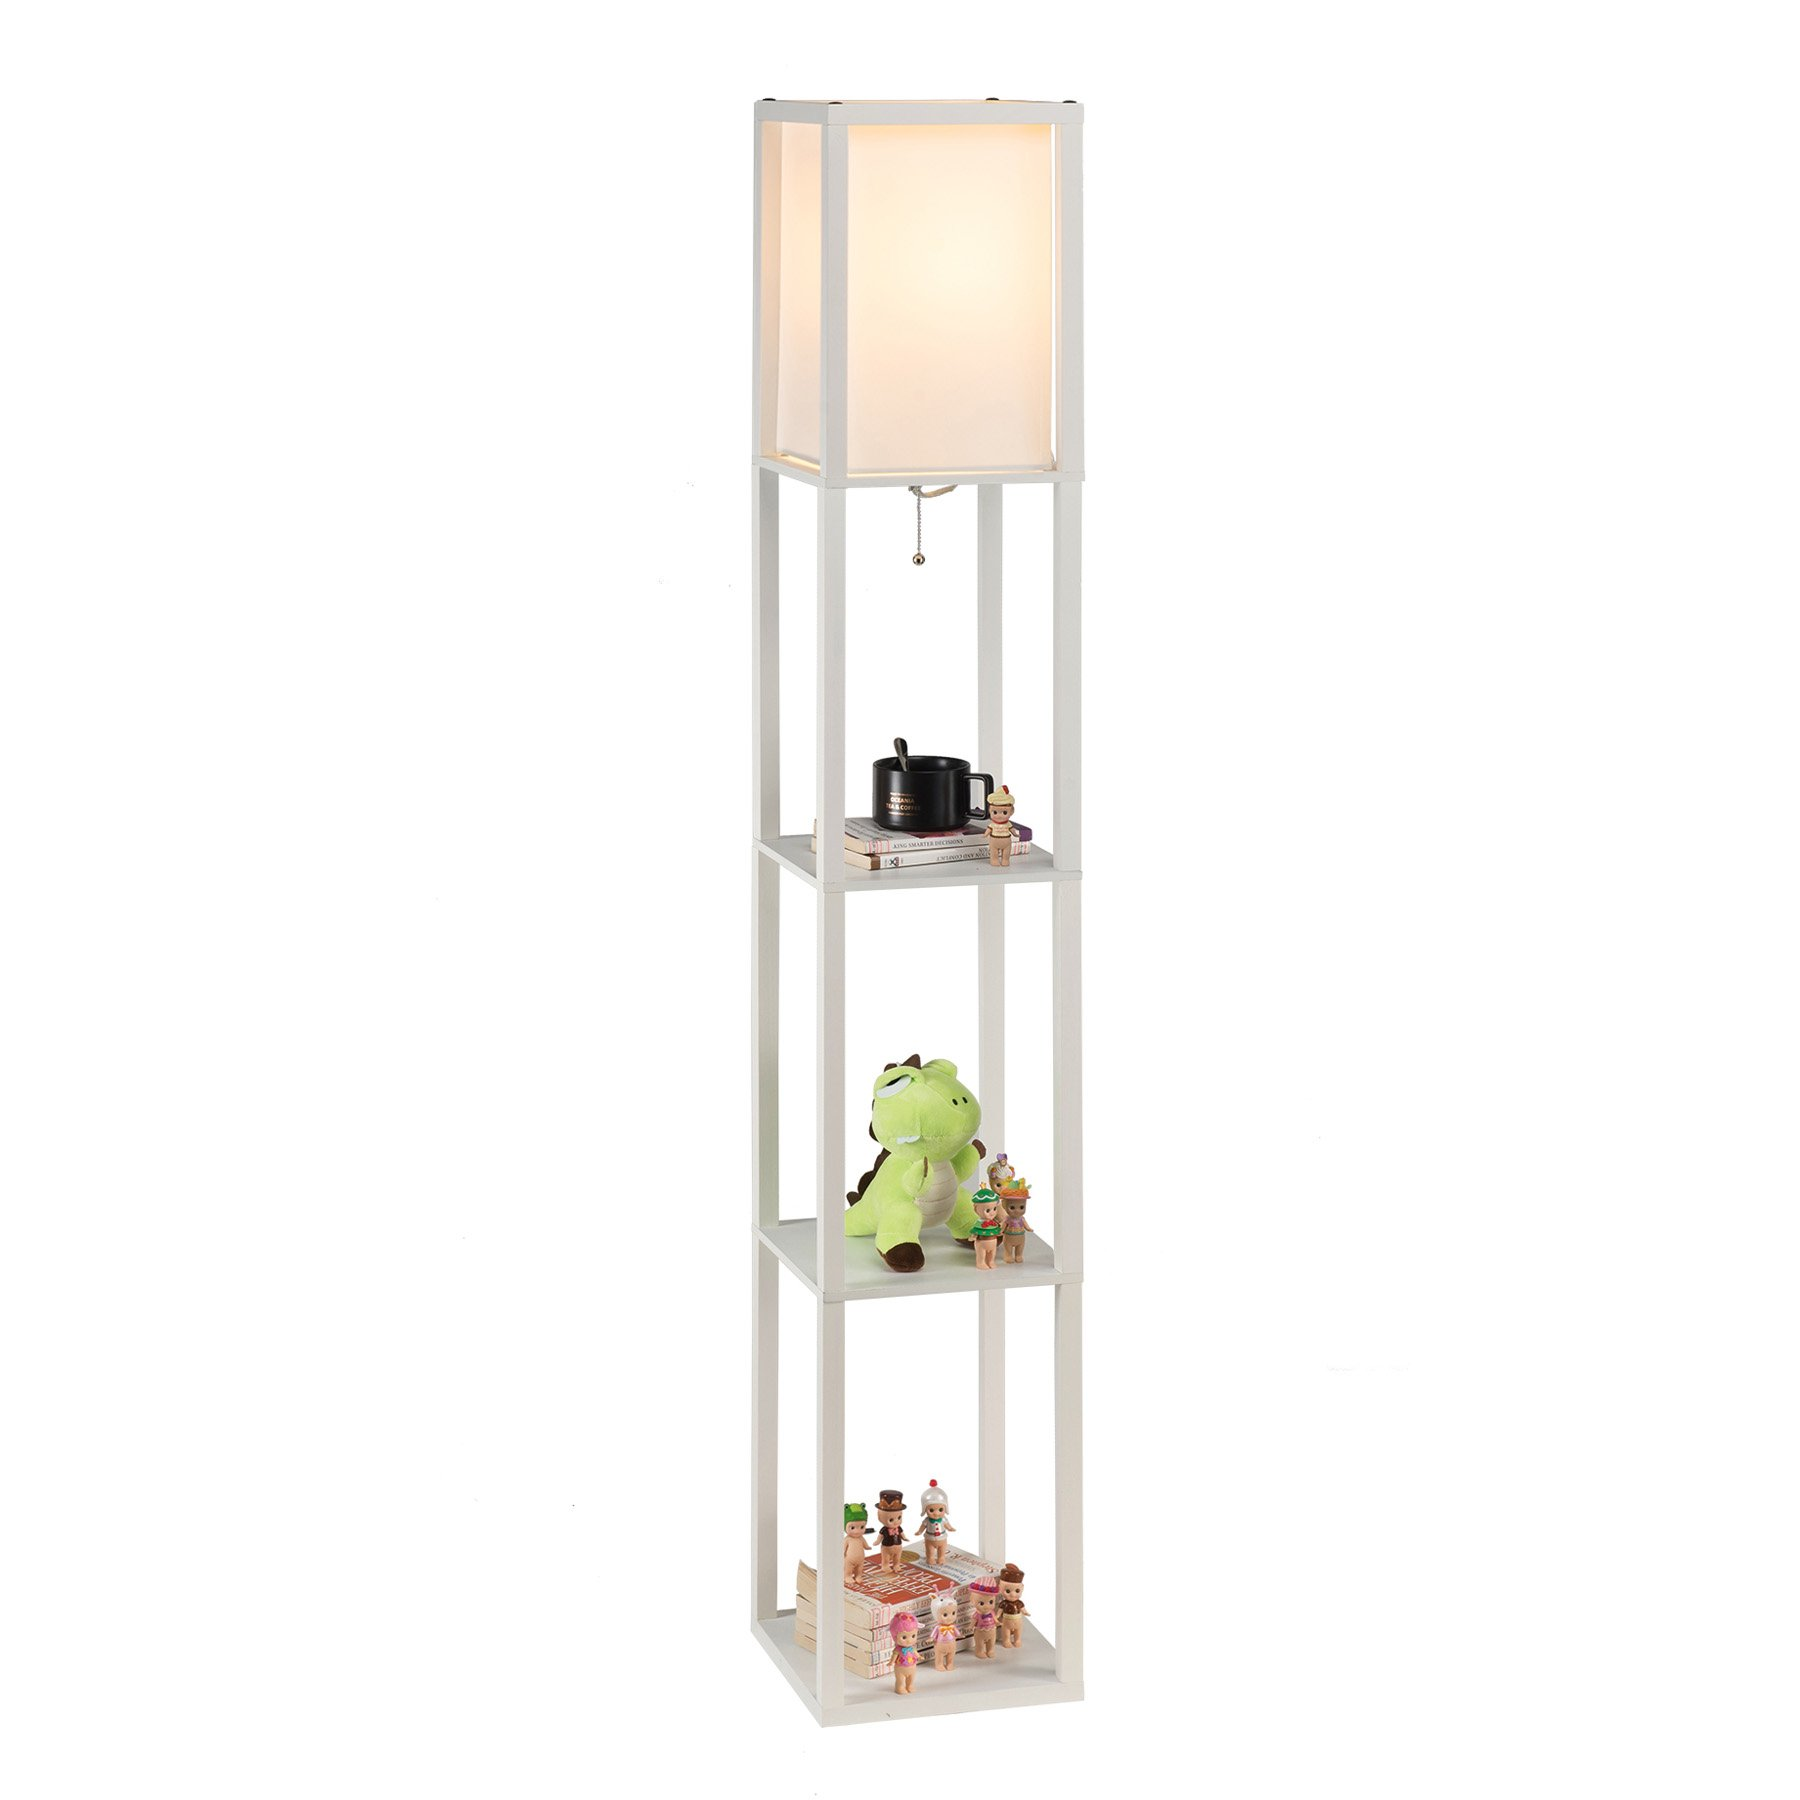 Details about CO-Z Floor Standing Lamp with 3 Storage Display Wood Shelves  for Corner Bedroom